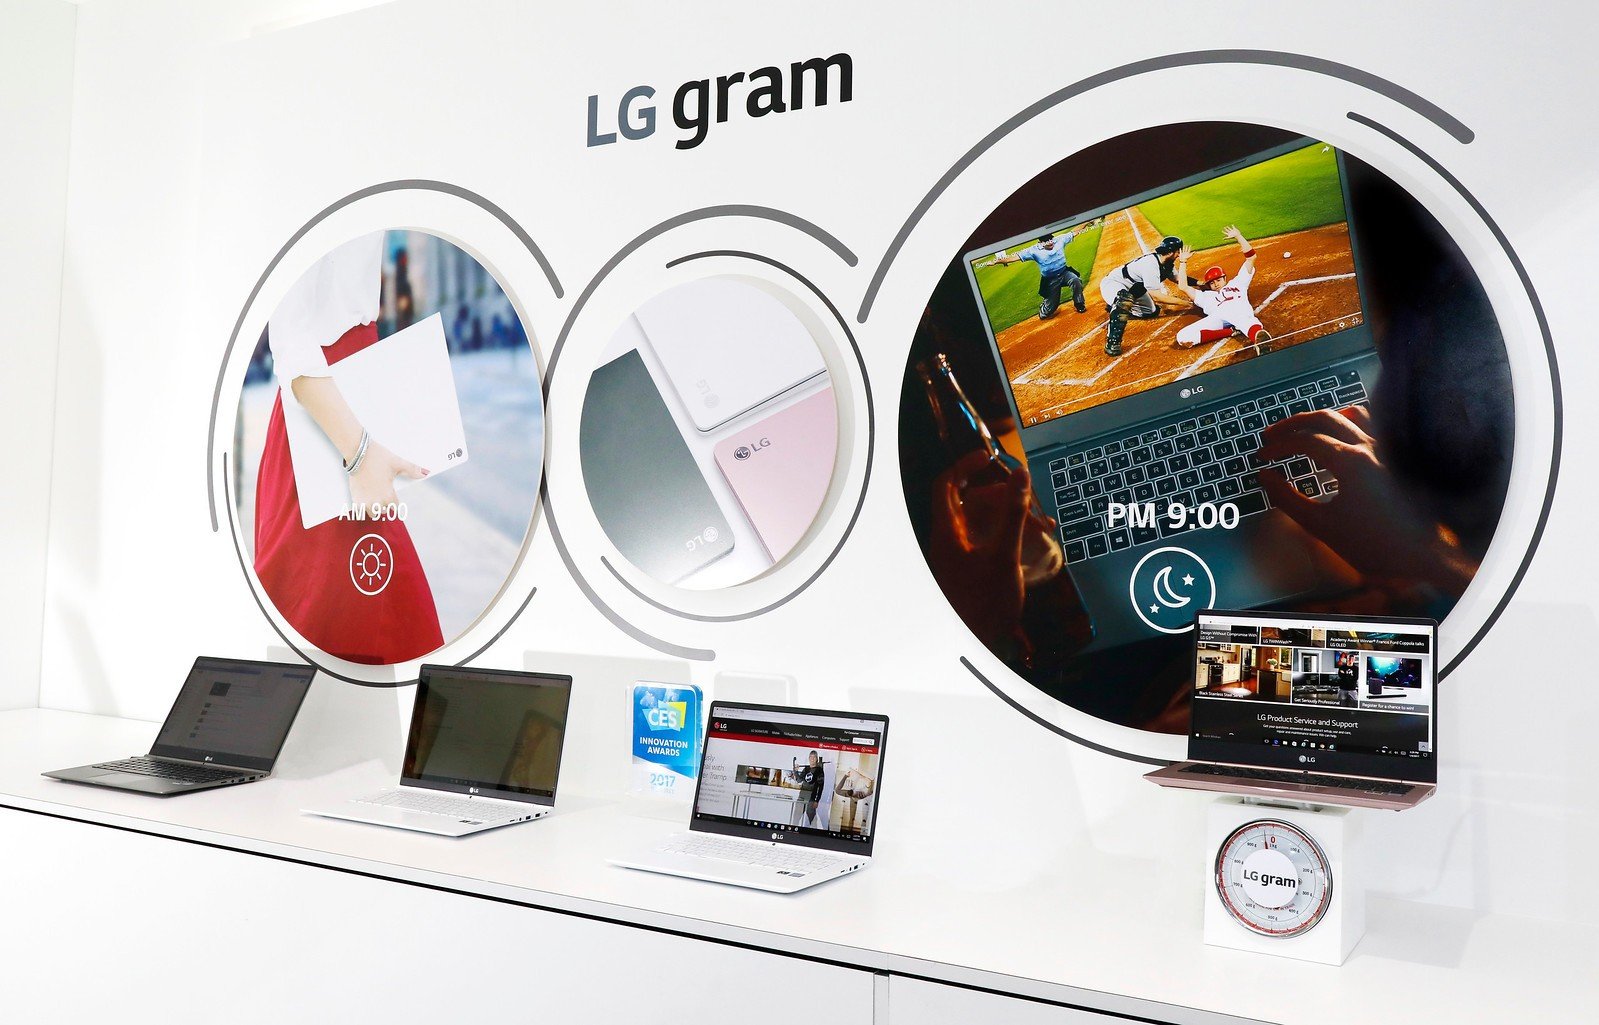 Close view of the LG gram laptop display zone with a model of its lineup being weighed to demonstrate its light weight at the LG display zone at CES 2017